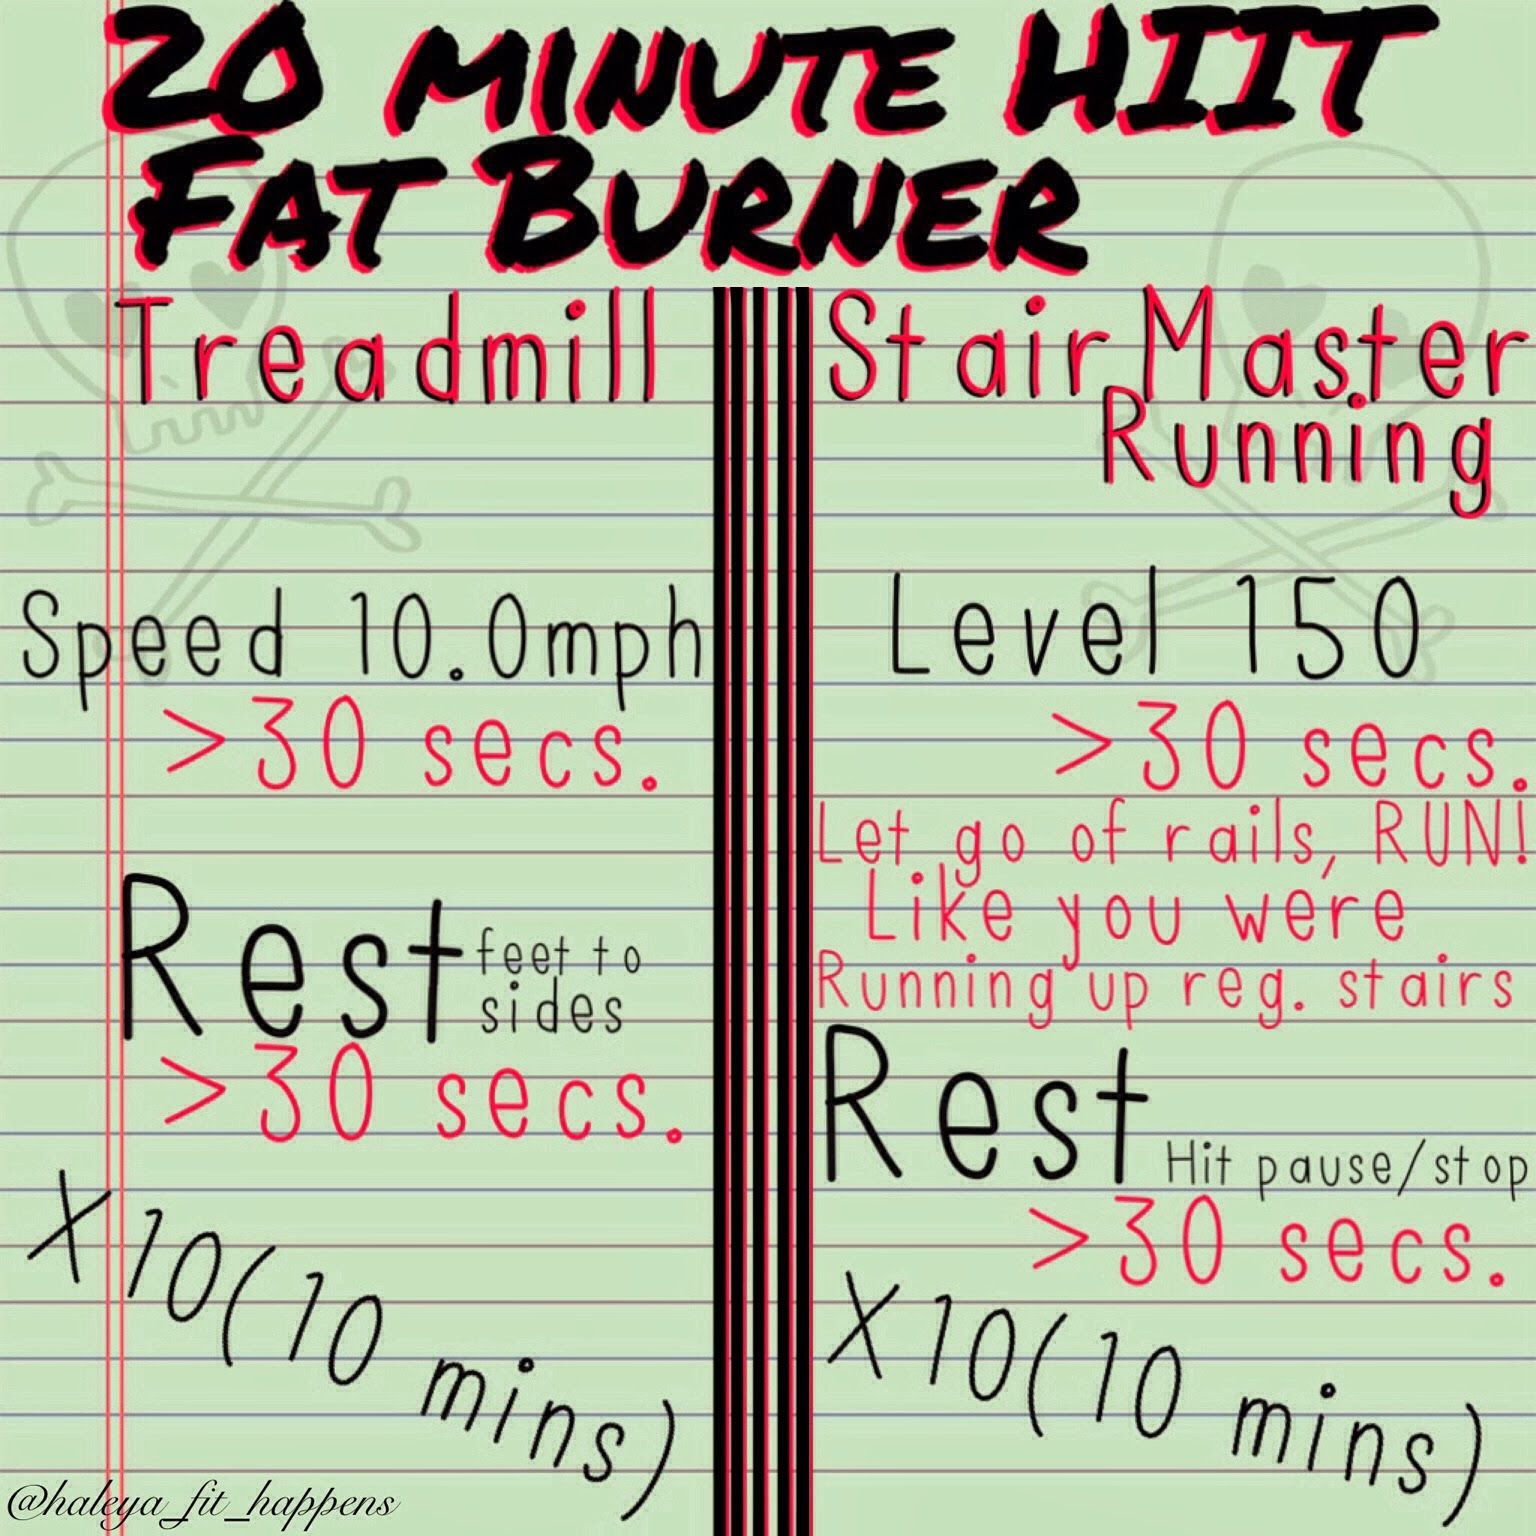 20 Minute At Home Cardio Workout 20 Minute Hiit Fat Burner Treadmill Stairmaster Ig Haleya